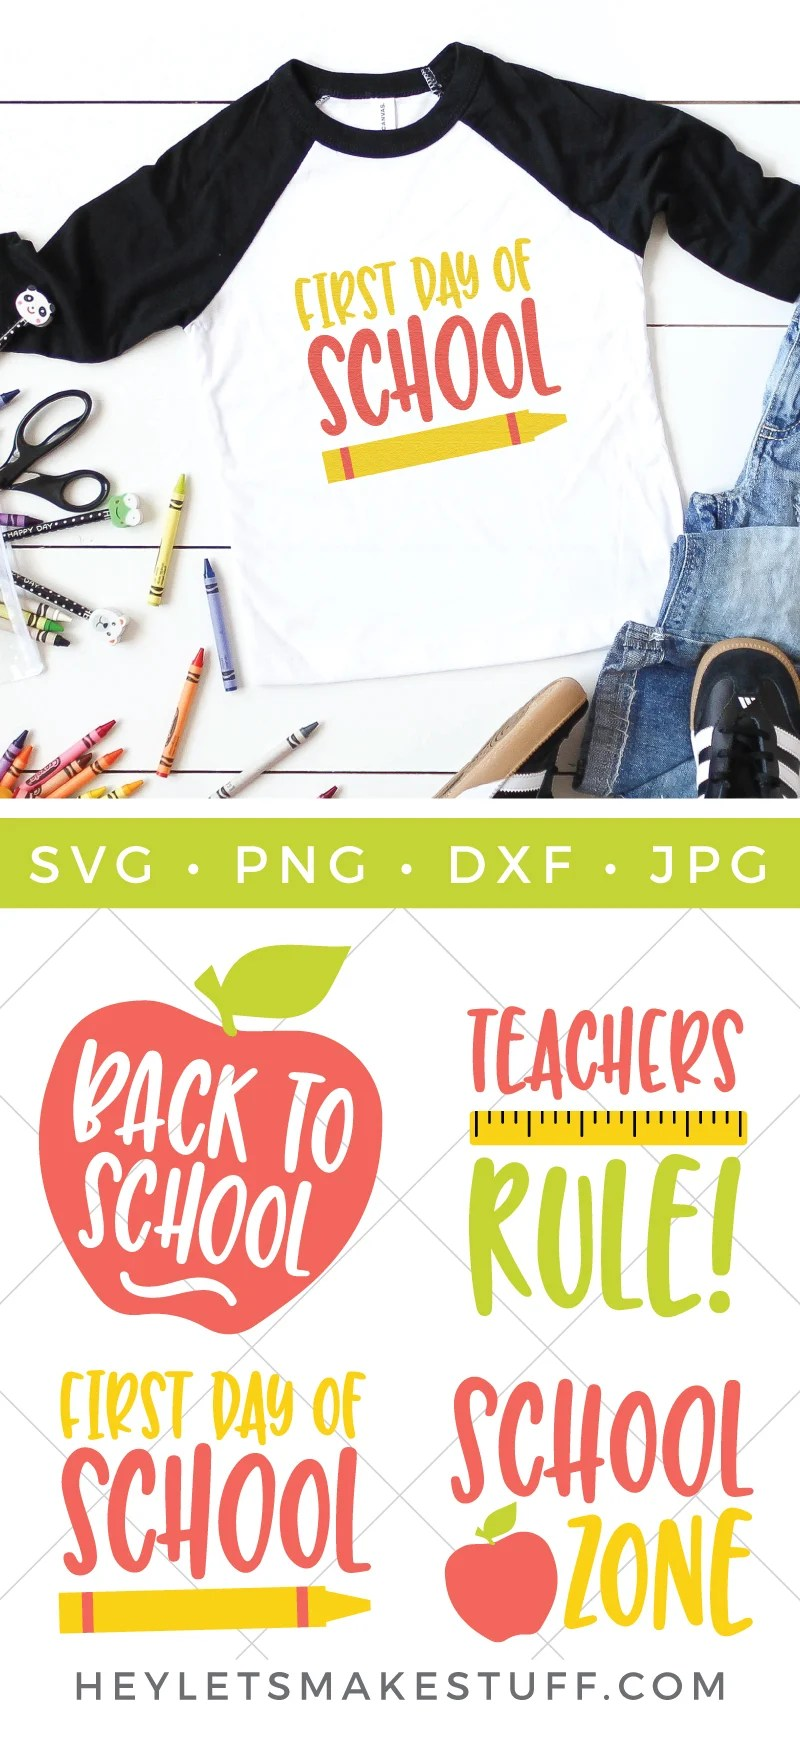 Before you know it school will be back in session! Get ready with this fun Back to School SVG Bundle. Everything you need to craft, create, and customize in the new school year. via @heyletsmakestuf